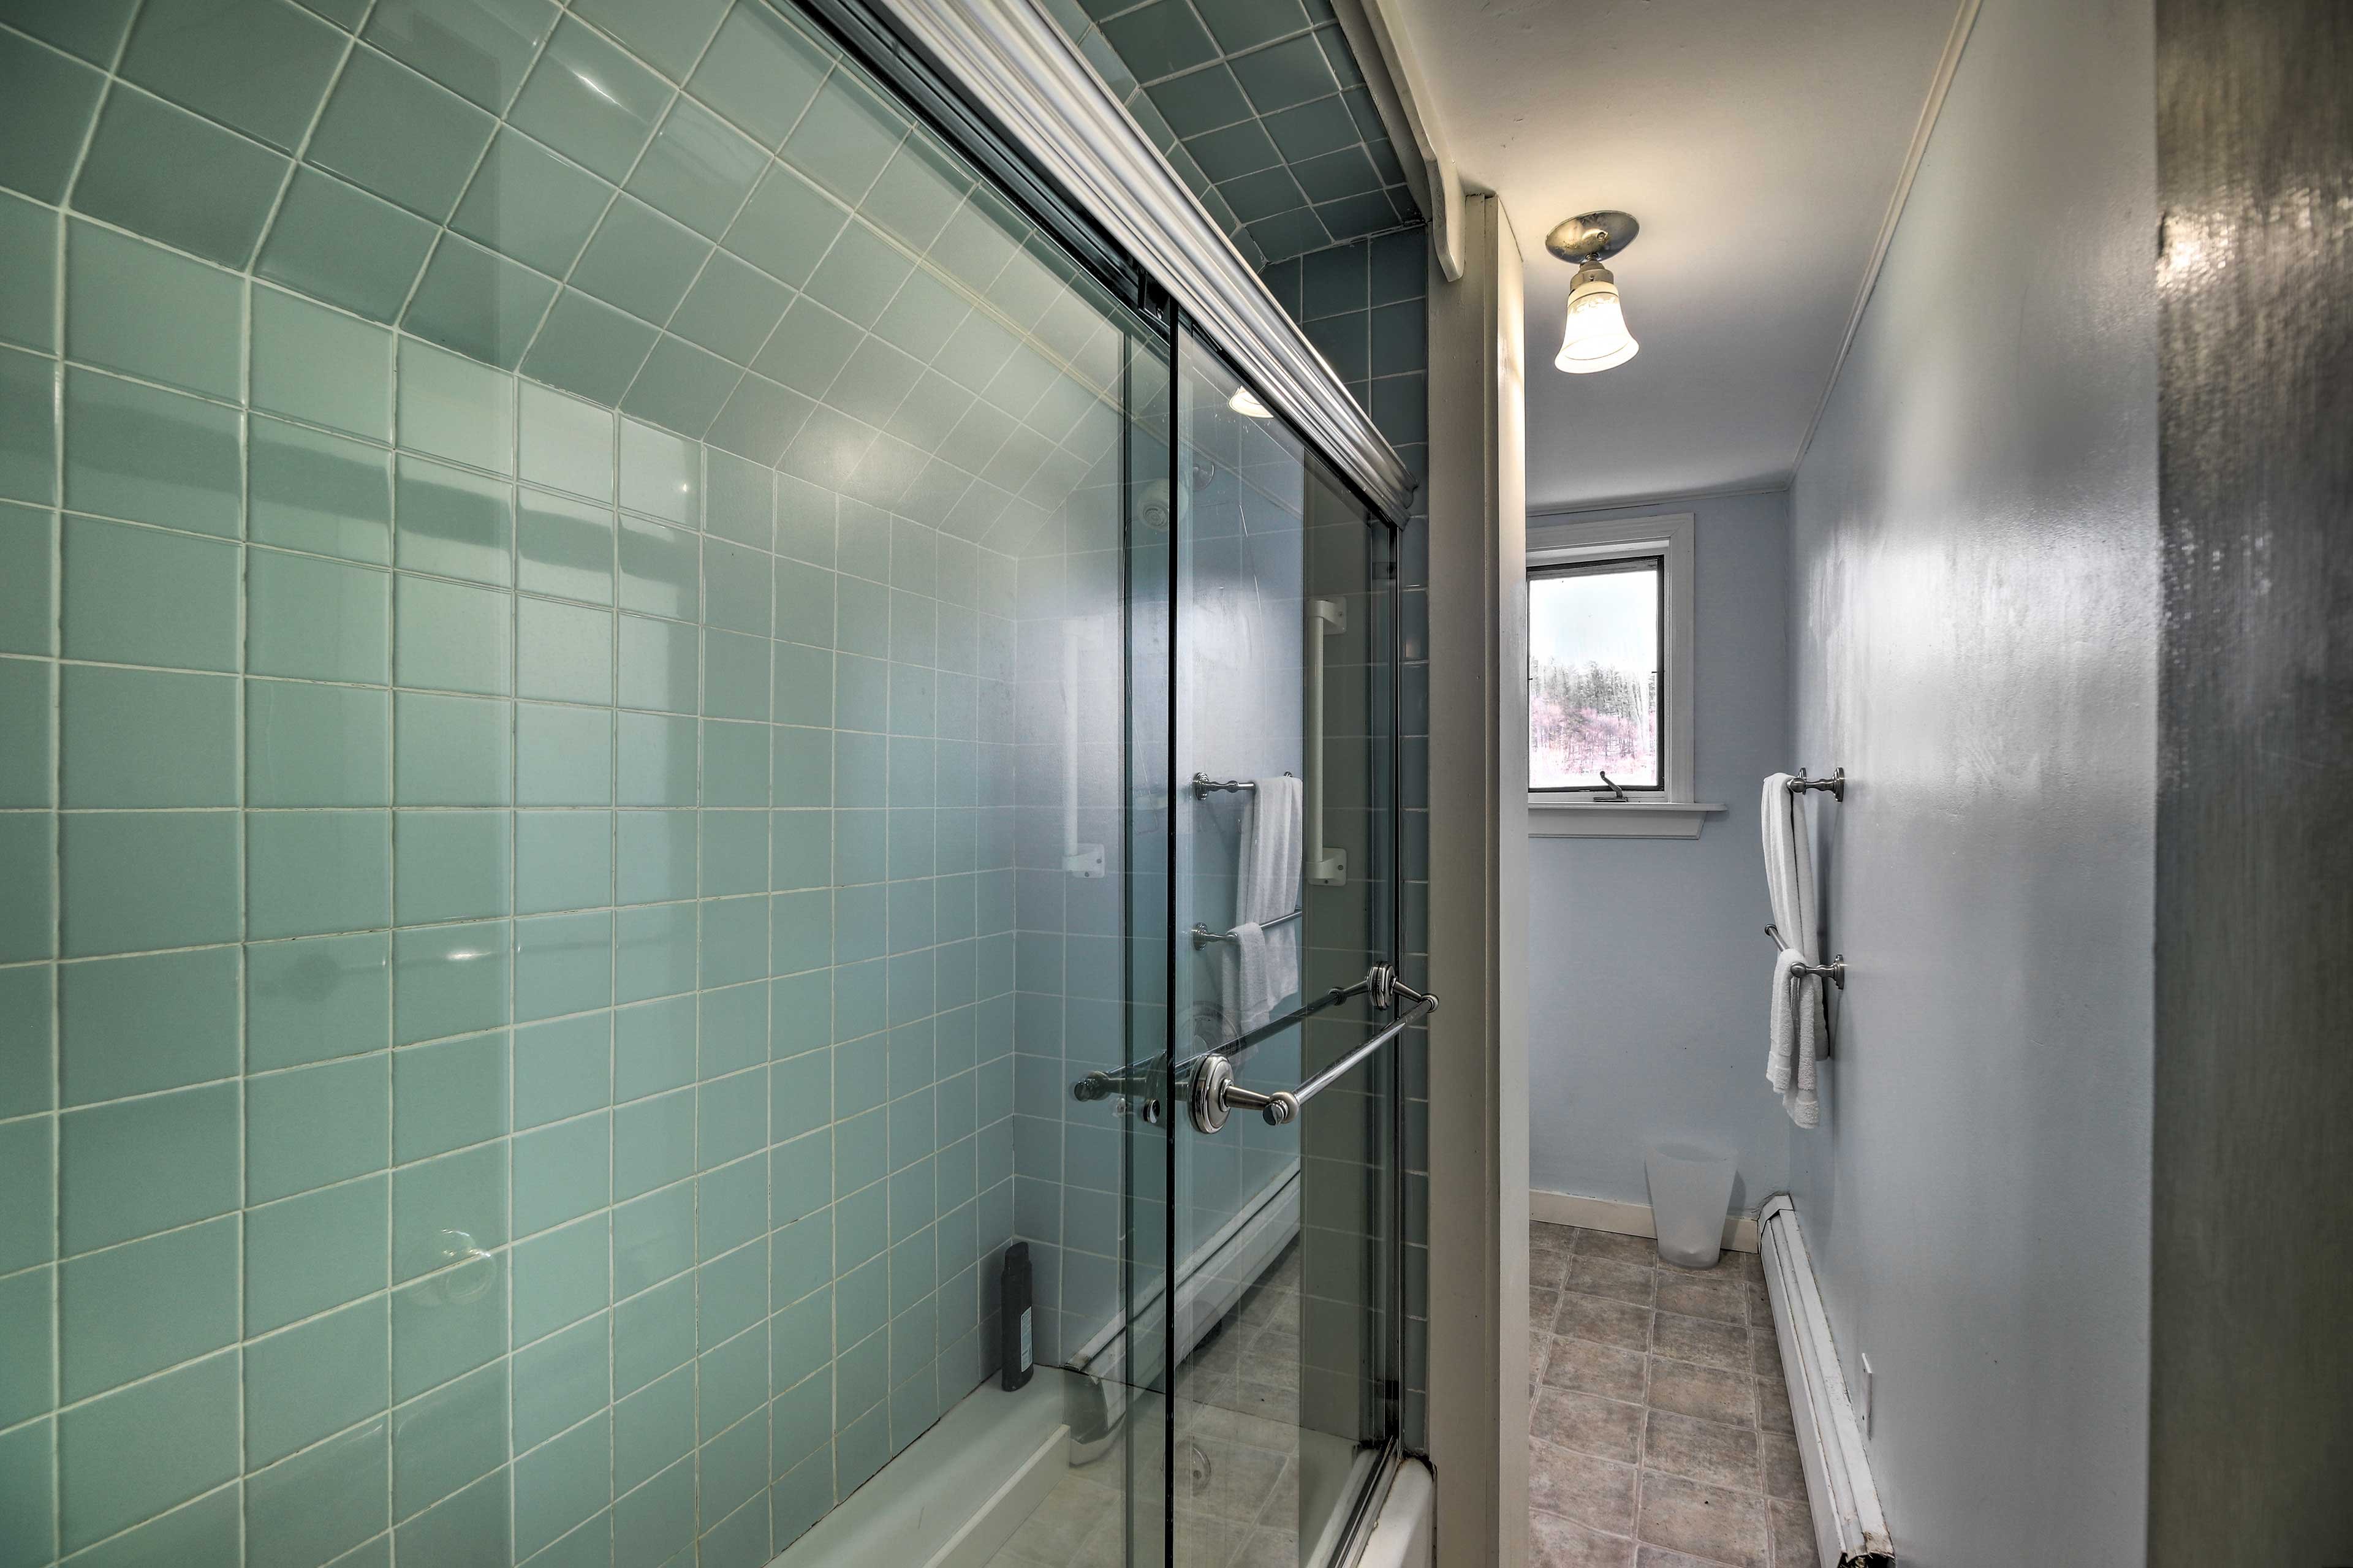 This bathroom has a large walk-in shower.